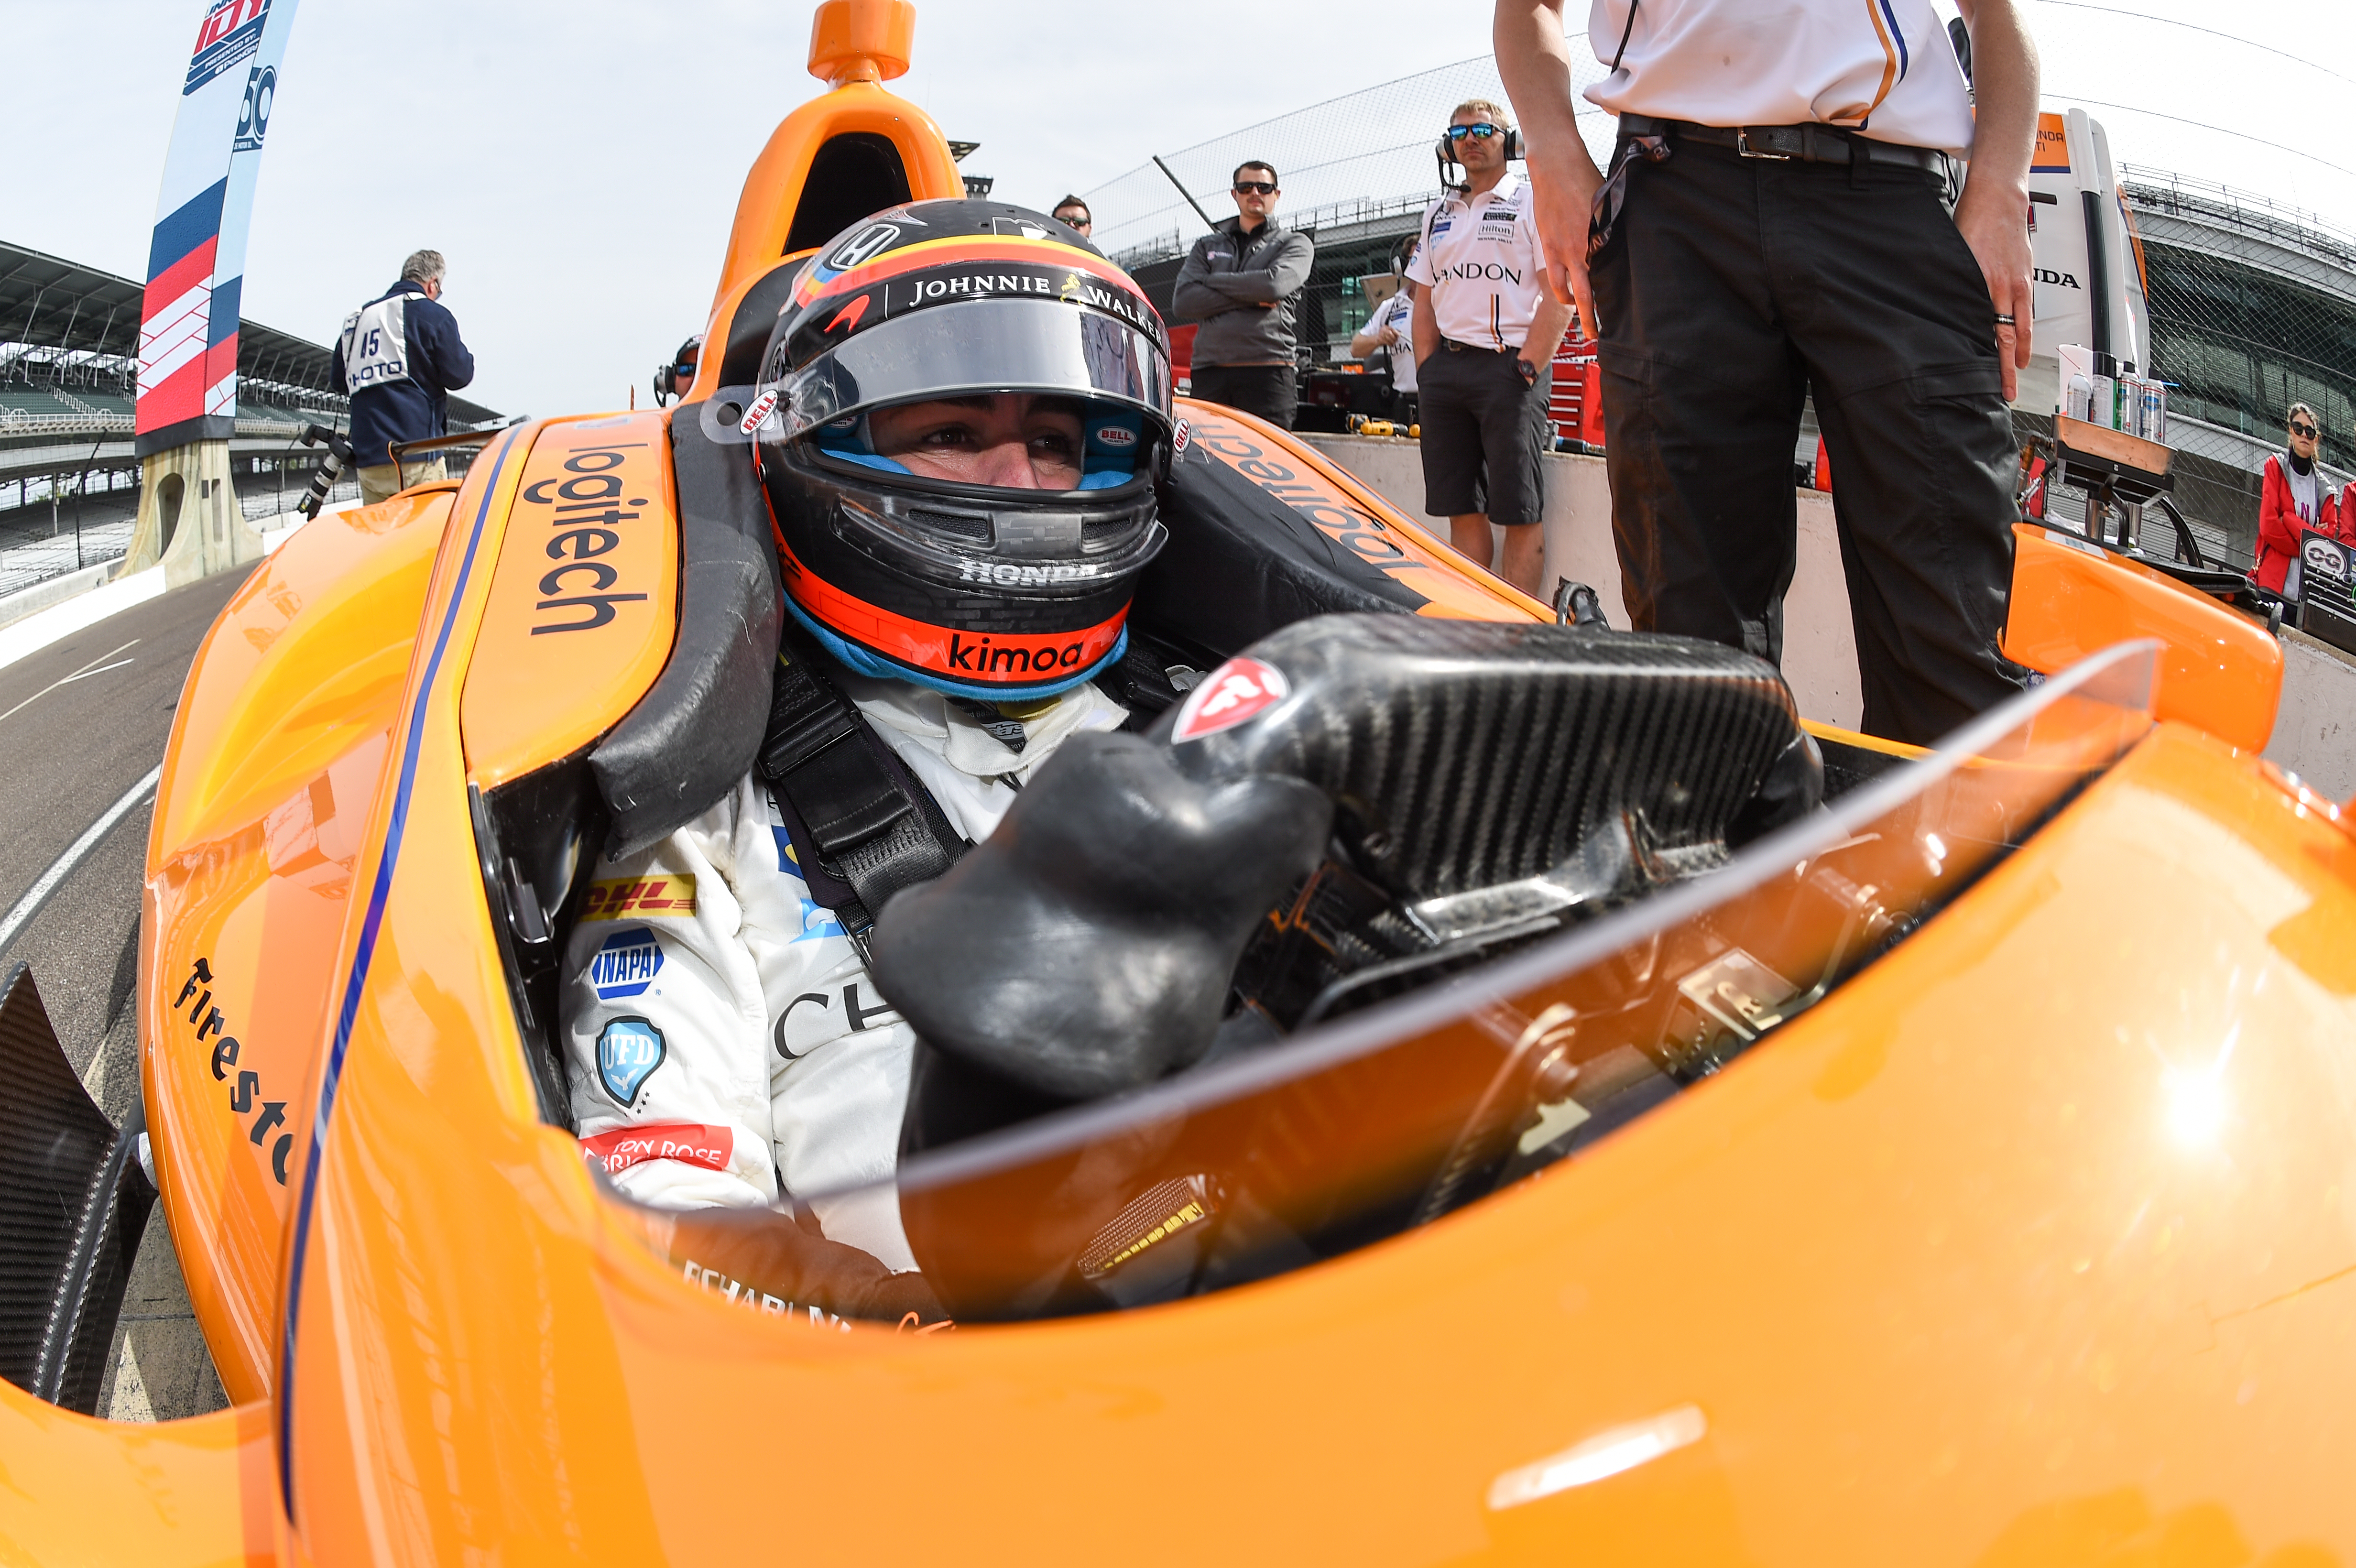 2017 Indy 500 Entry List Verizon Indycar Series News